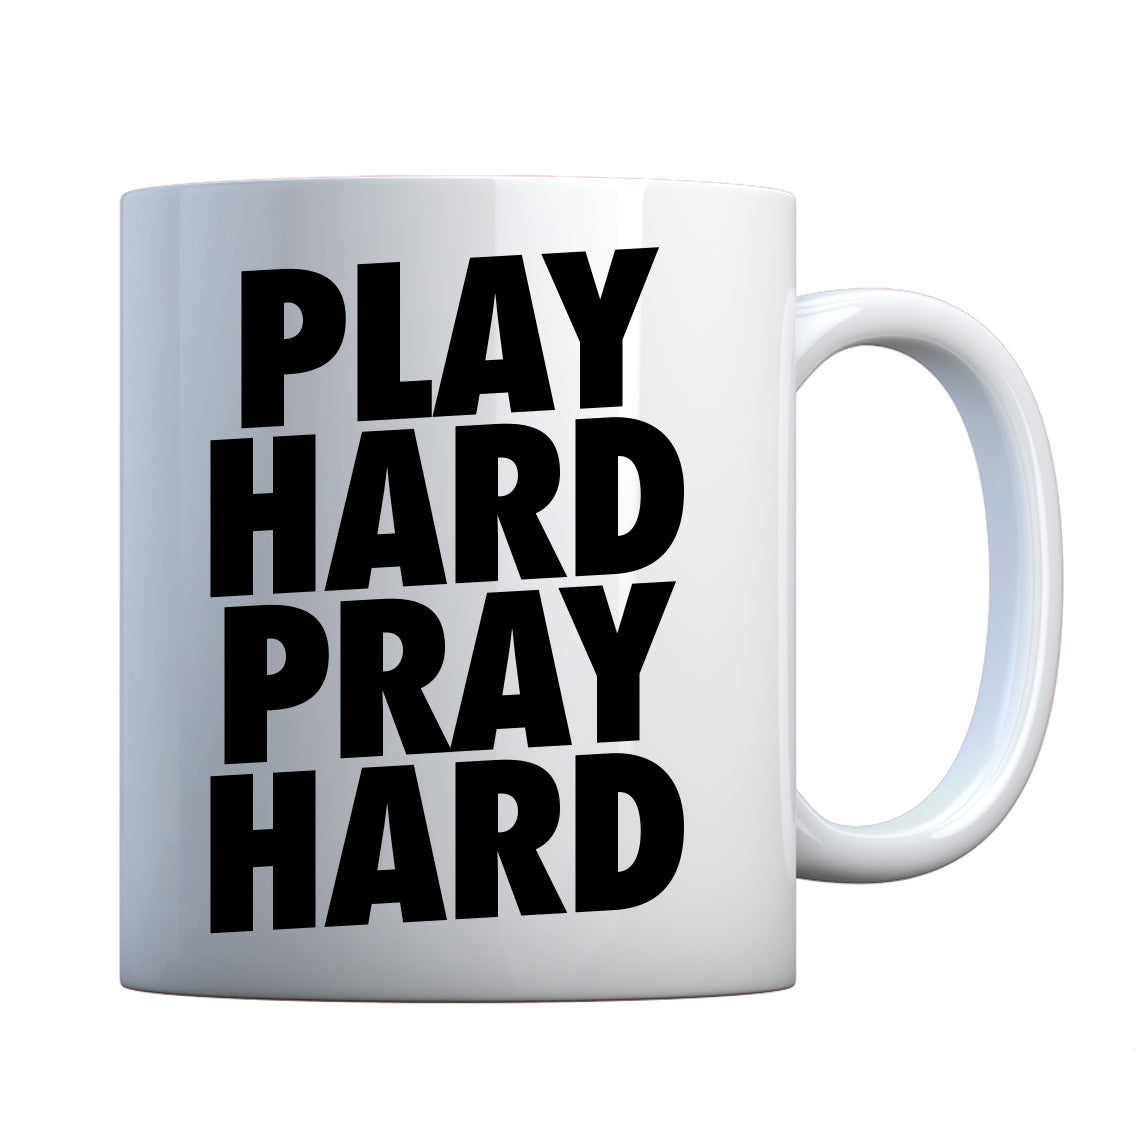 Mug Play Hard Pray Hard Ceramic Gift Mug